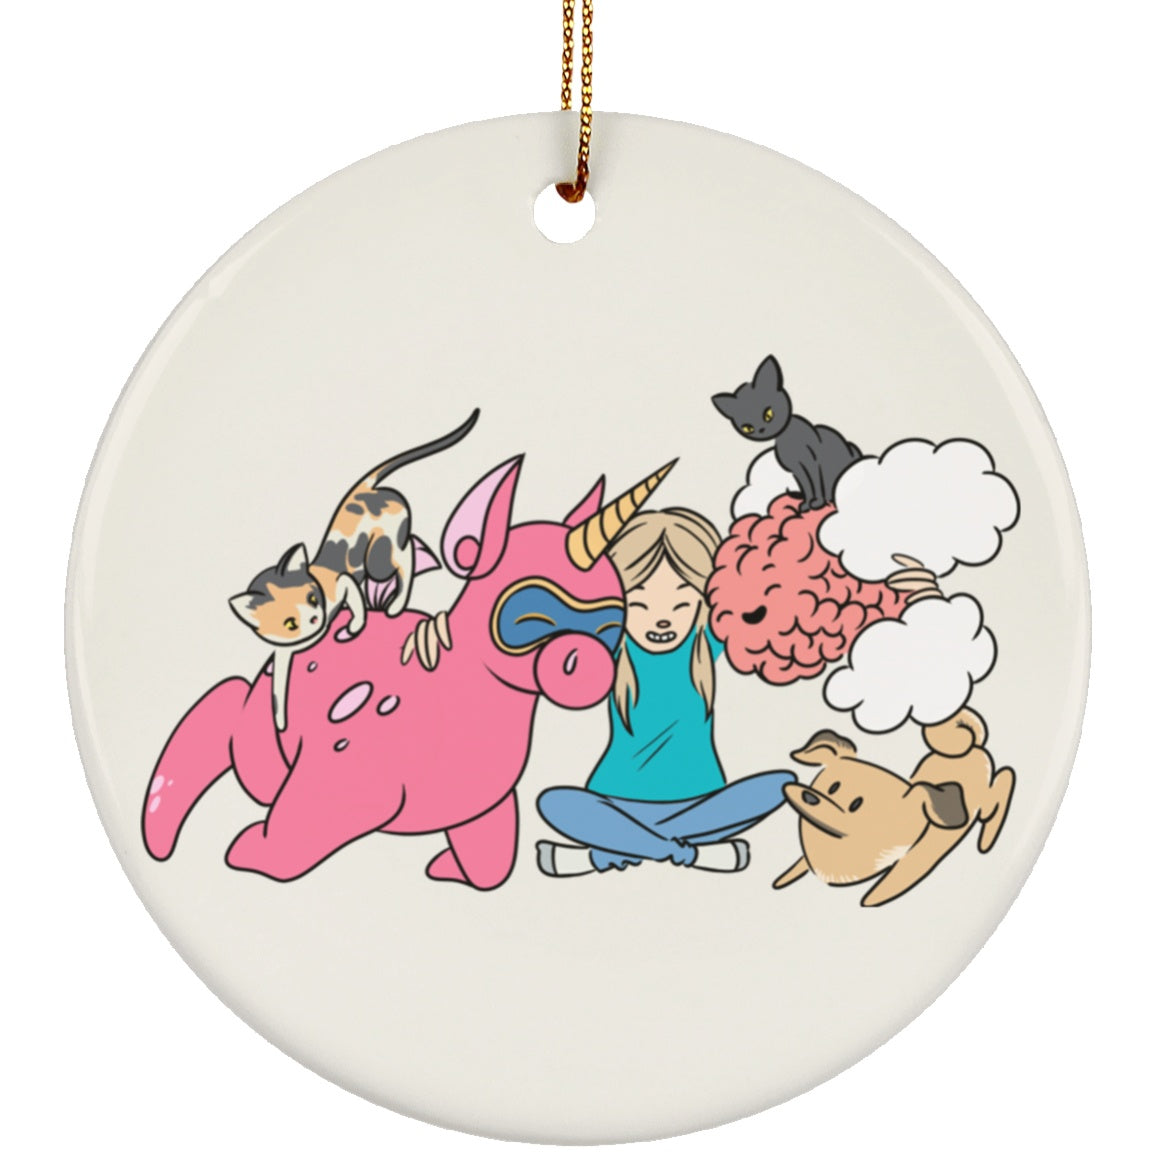 Emmeline and Chargimals Circle Ornament - The Unchargeables